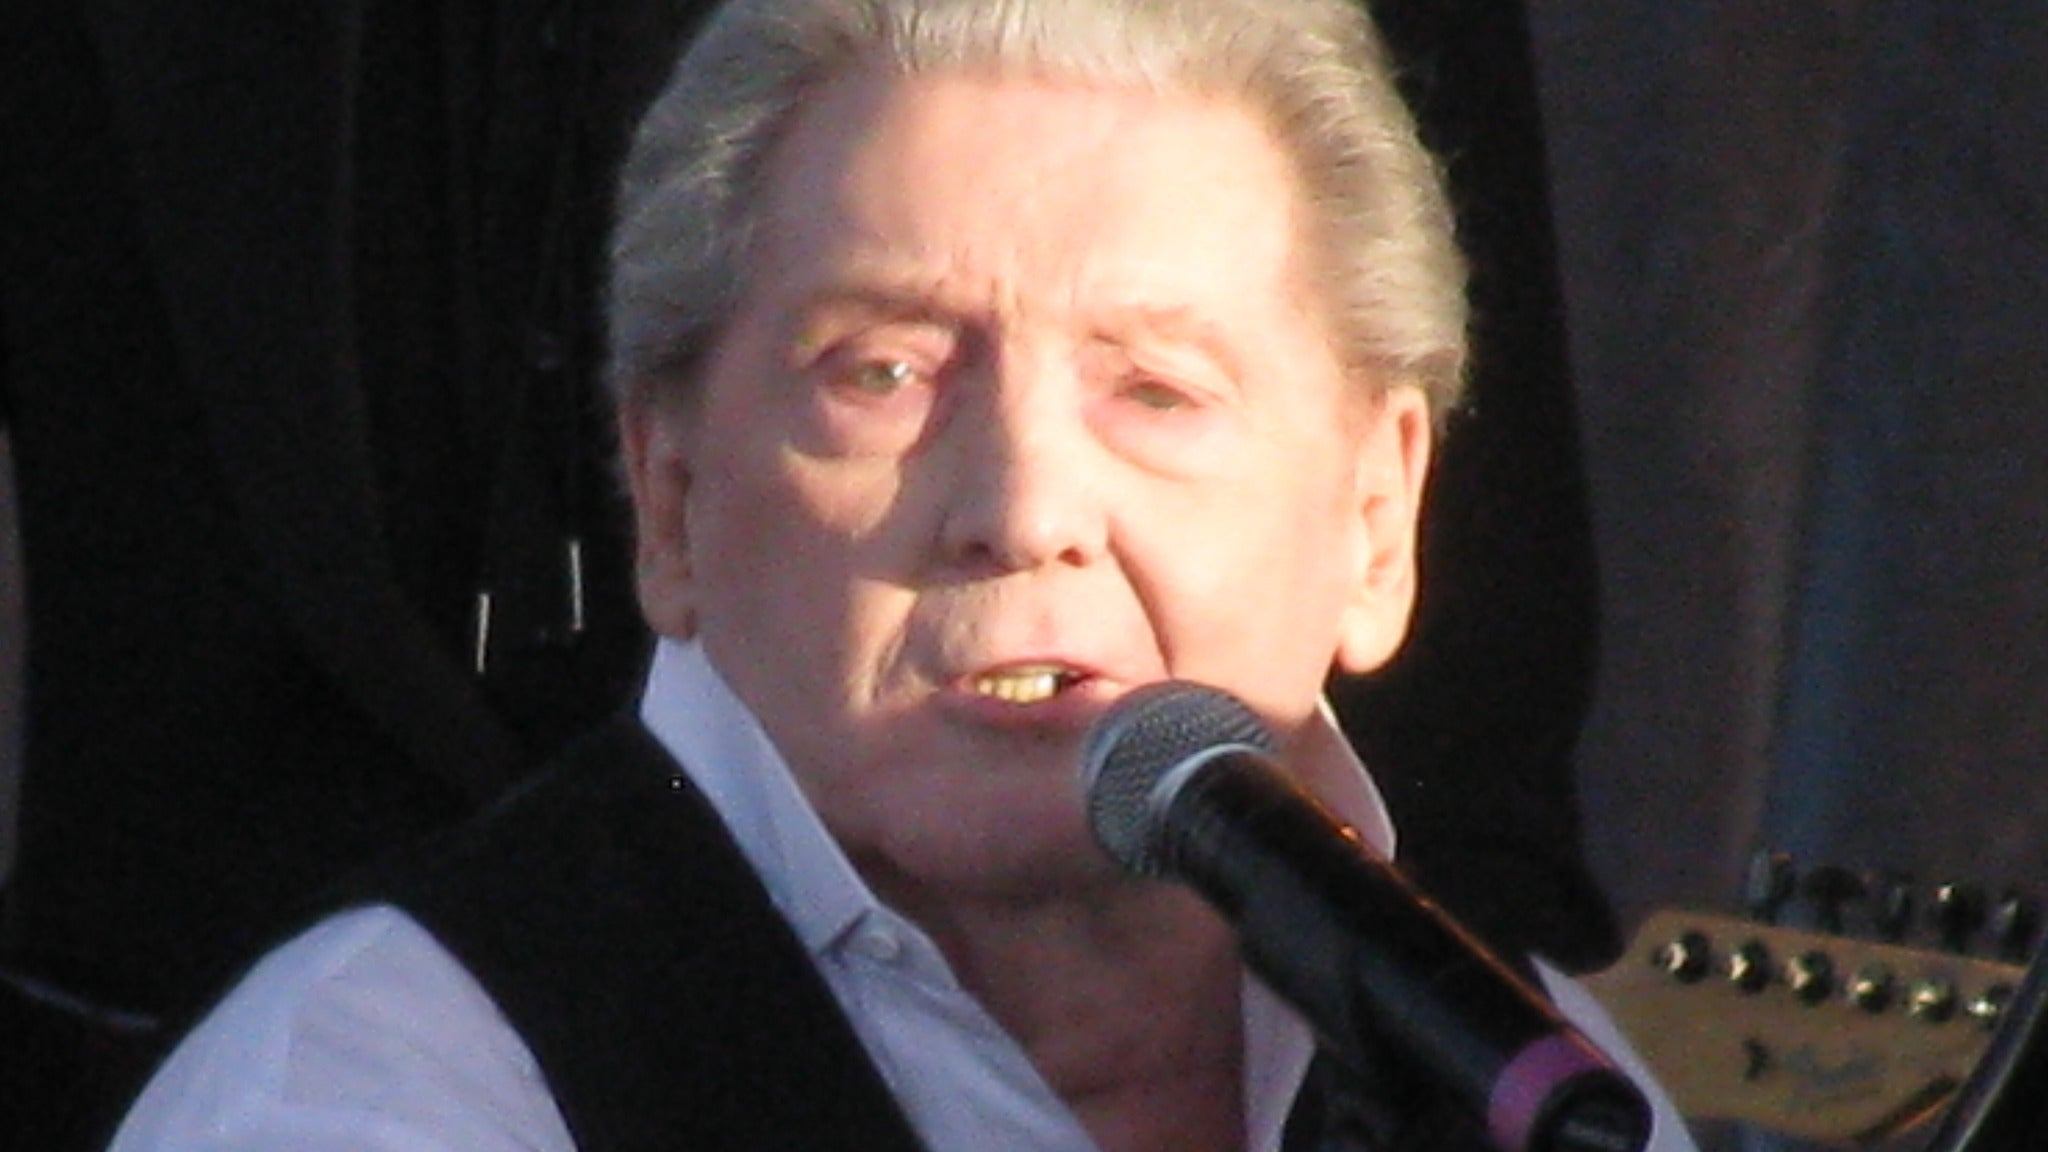 Jerry Lee Lewis at Van Wezel Performing Arts Center